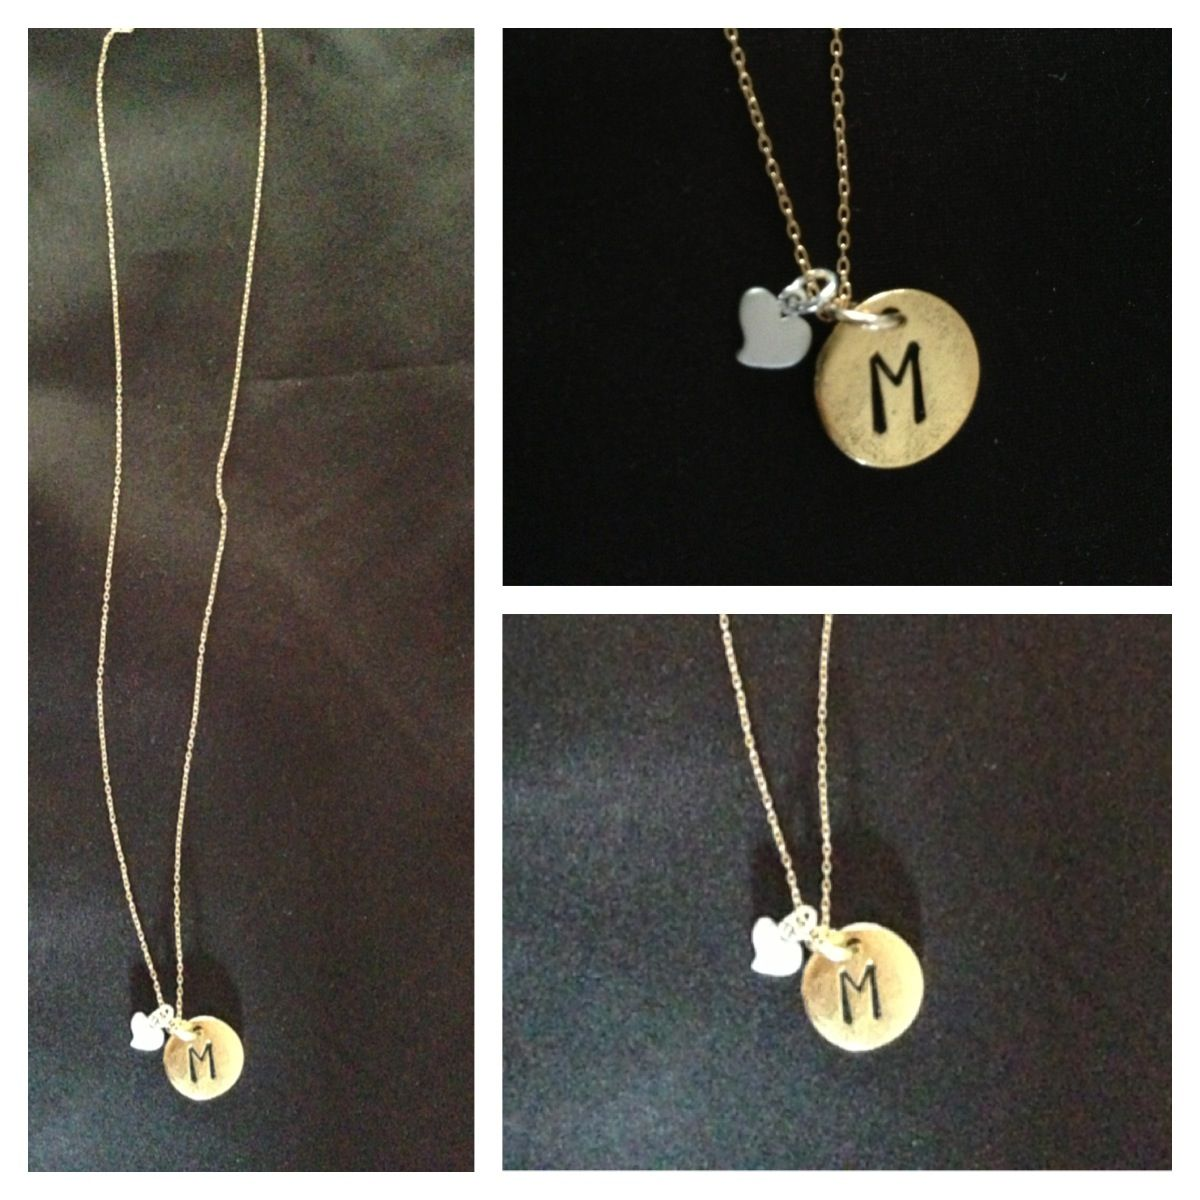 Etsy necklace m love heart cute